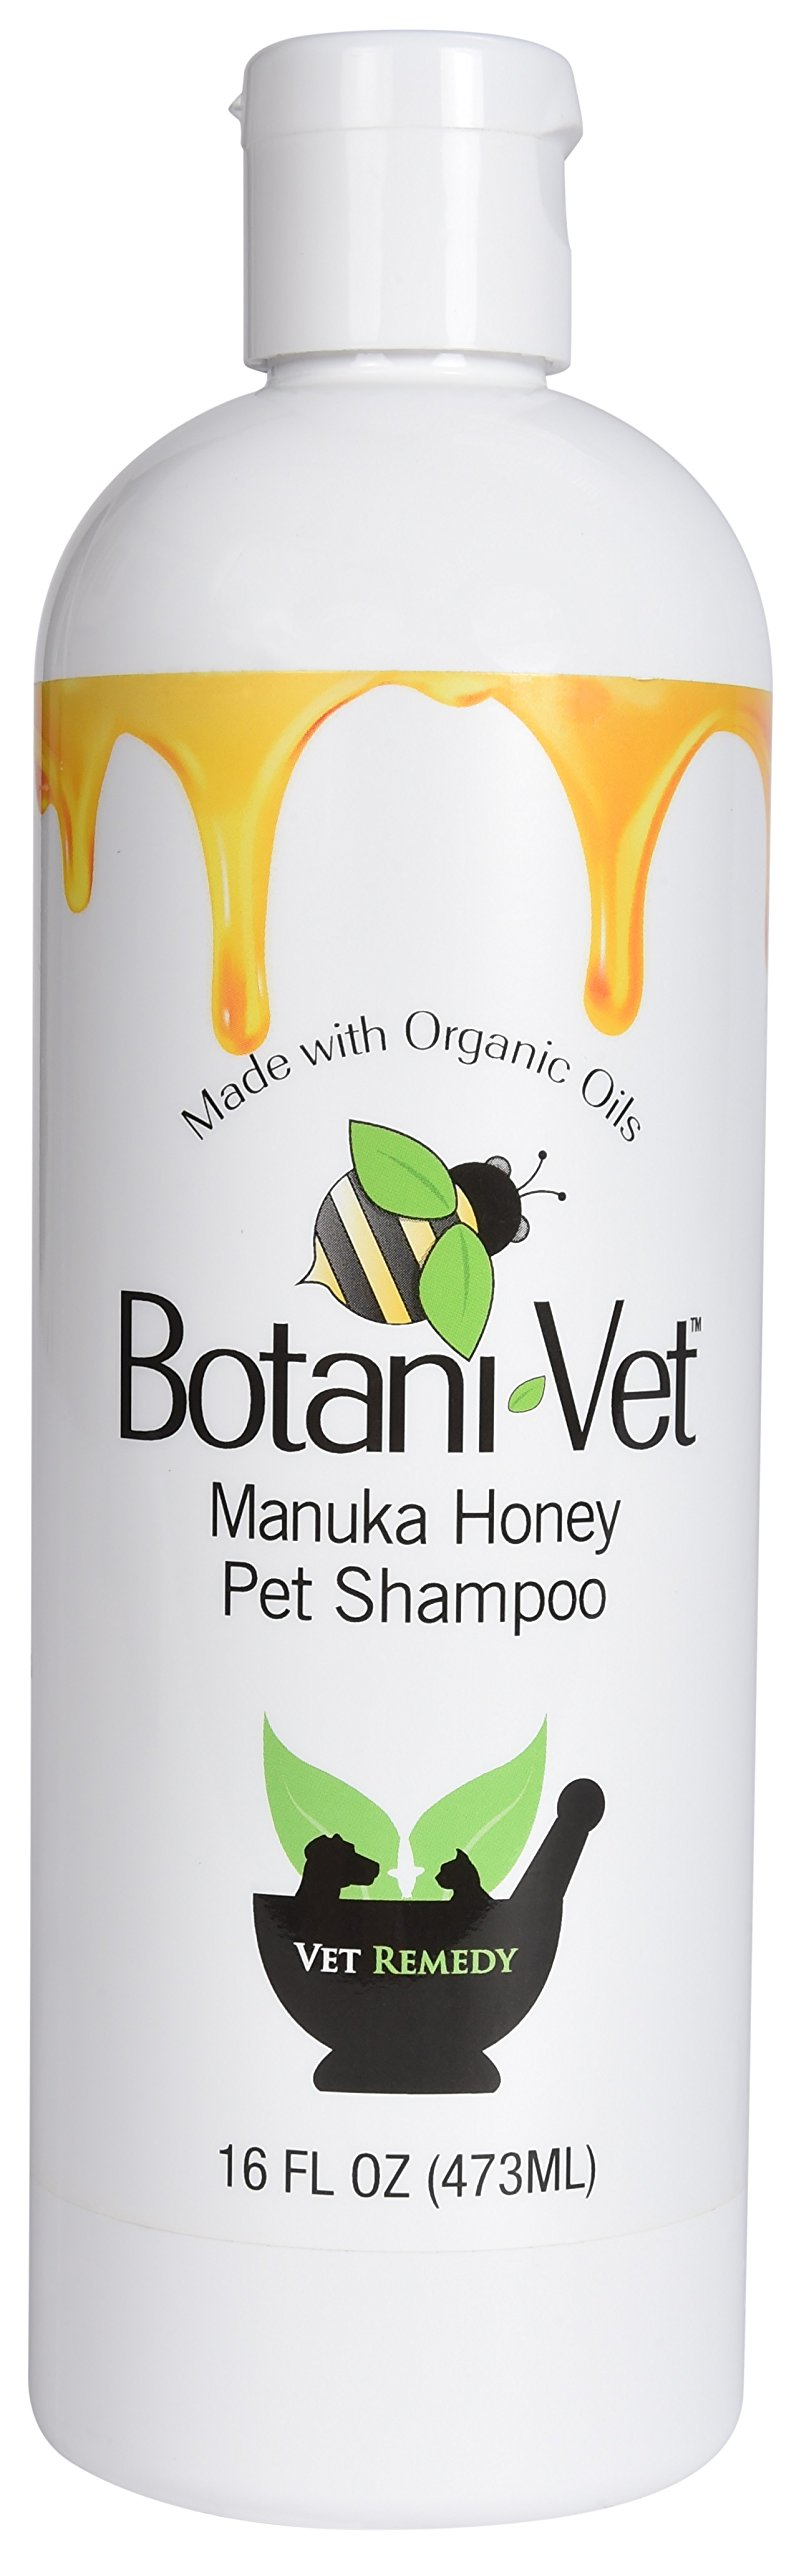 BotaniVet Certified Organic Manuka Honey Pet Shampoo 16 Oz - 100% Natural Ingredients - Veterinary Dermatologist Formulated for Allergies and Itching by BotaniVet